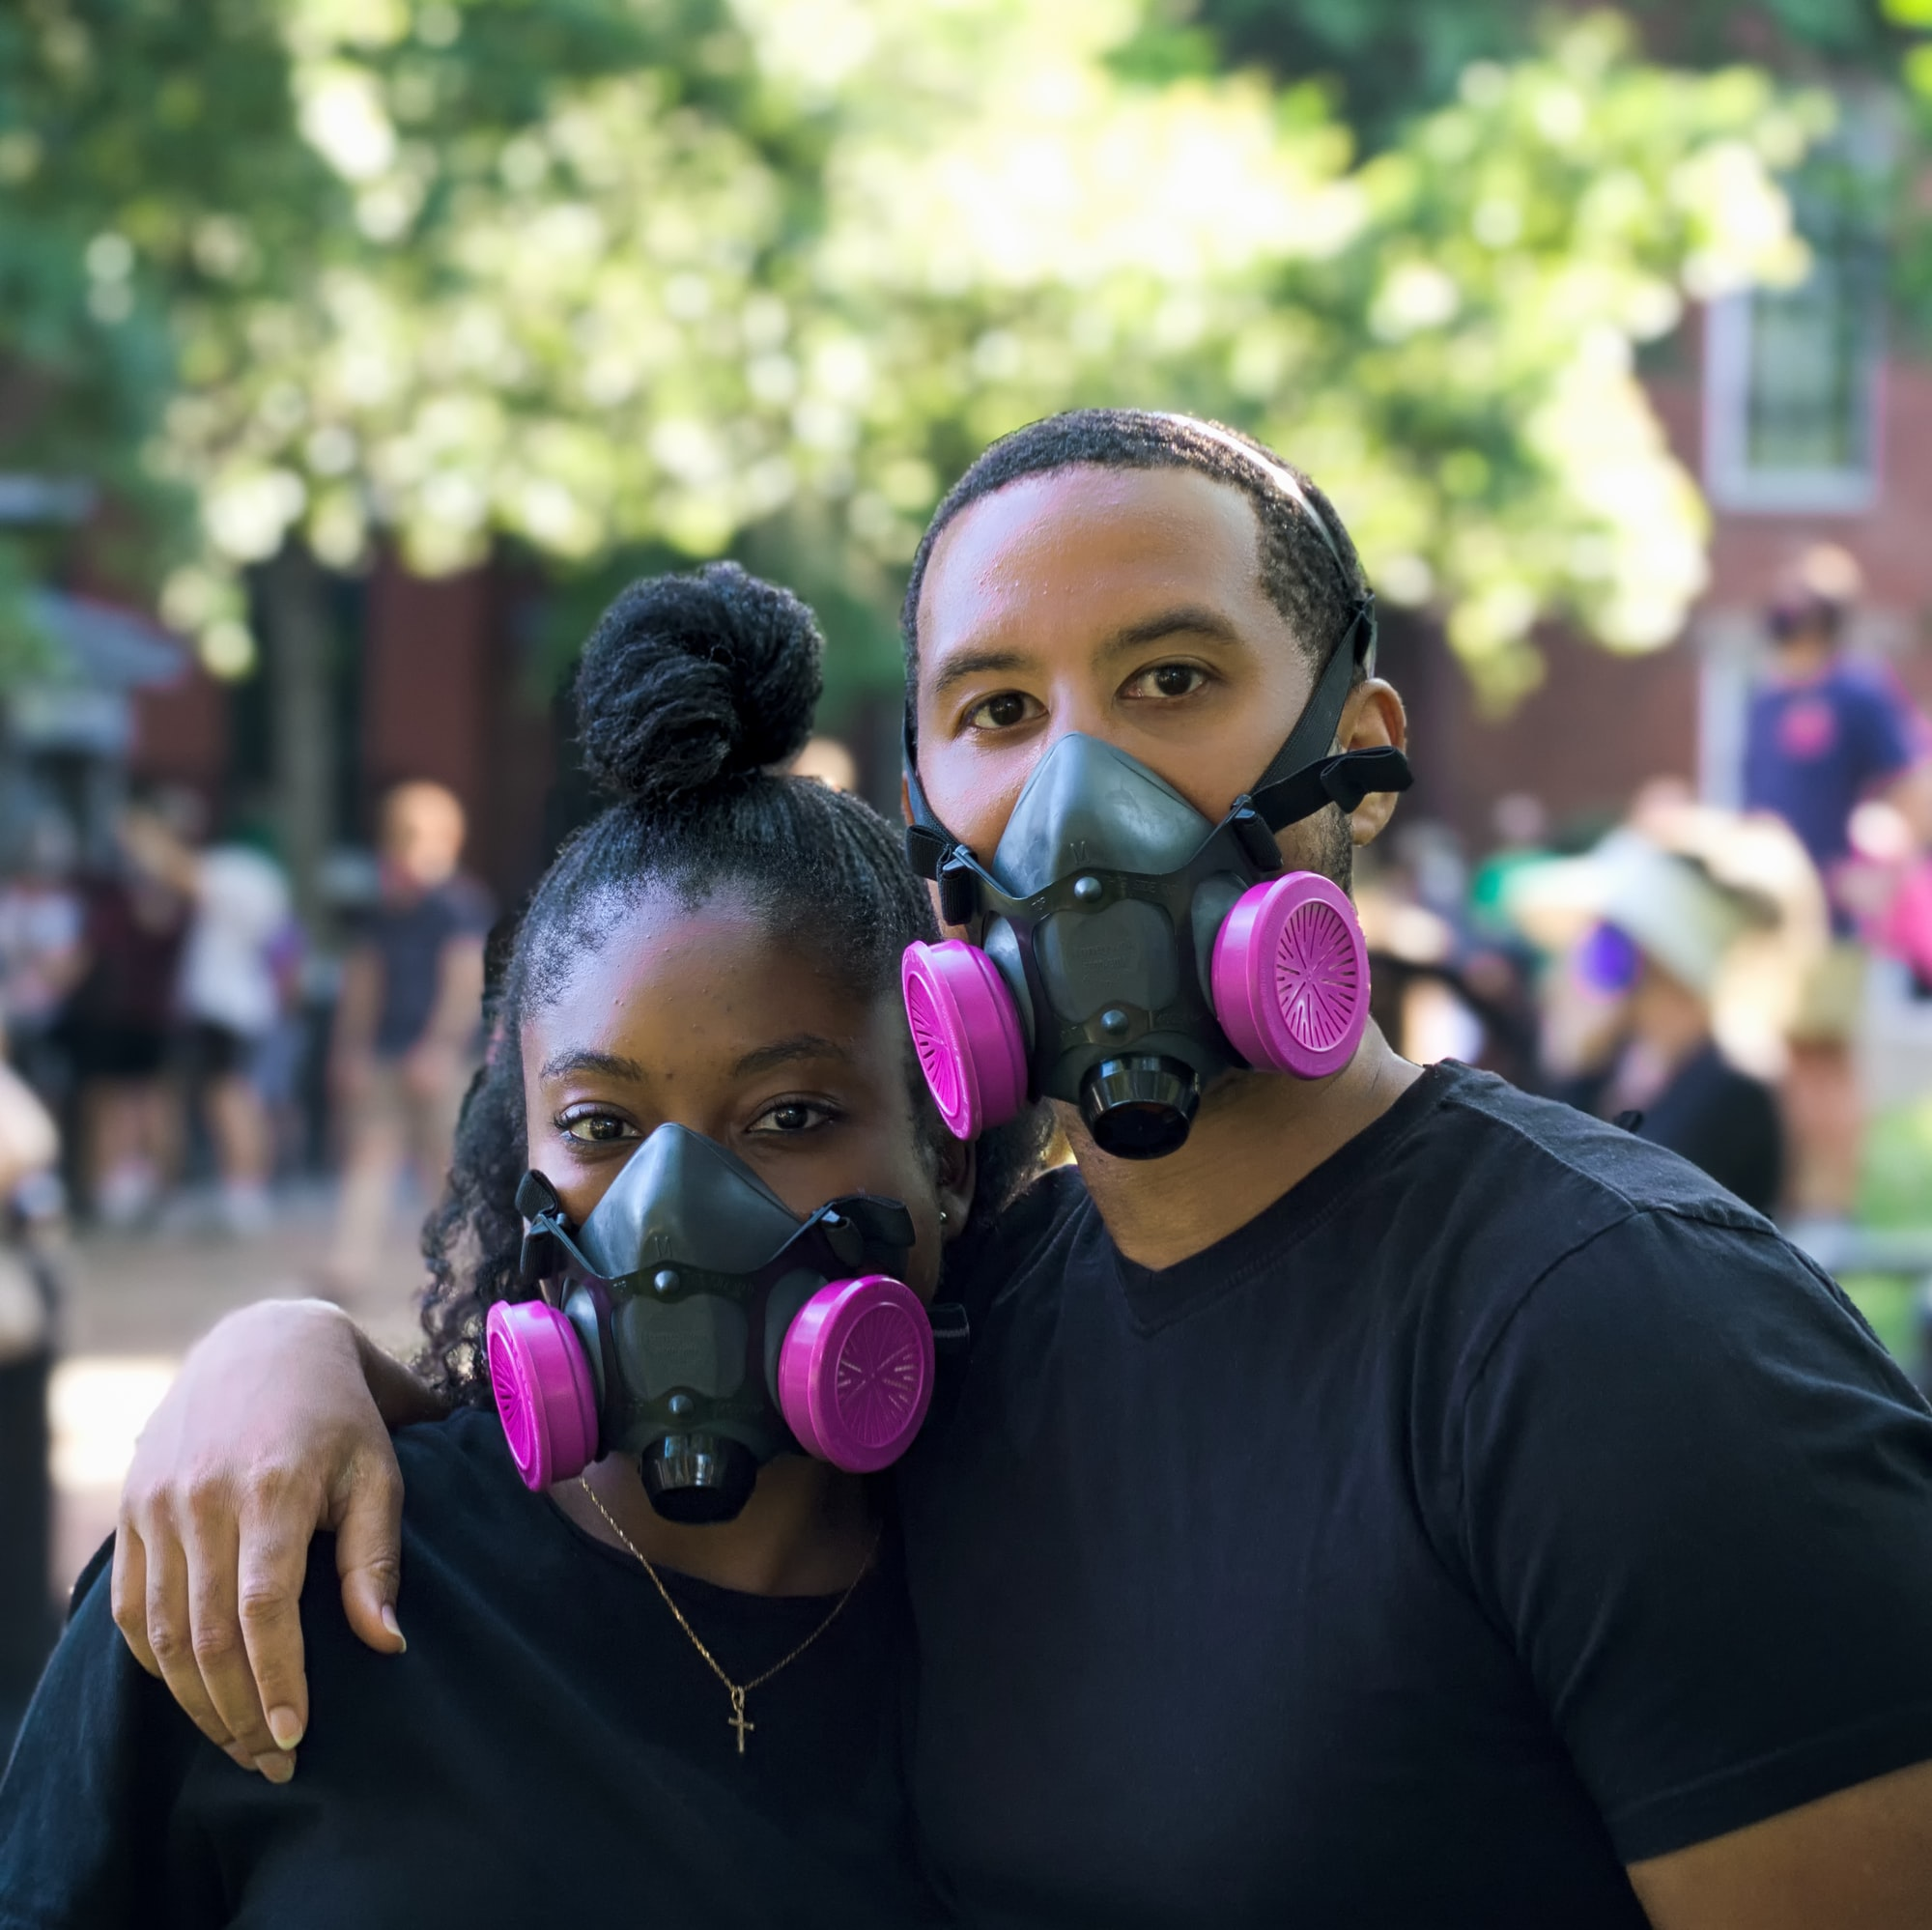 A Couple wearing pink accented gas masks joins the Protests in Washington DC